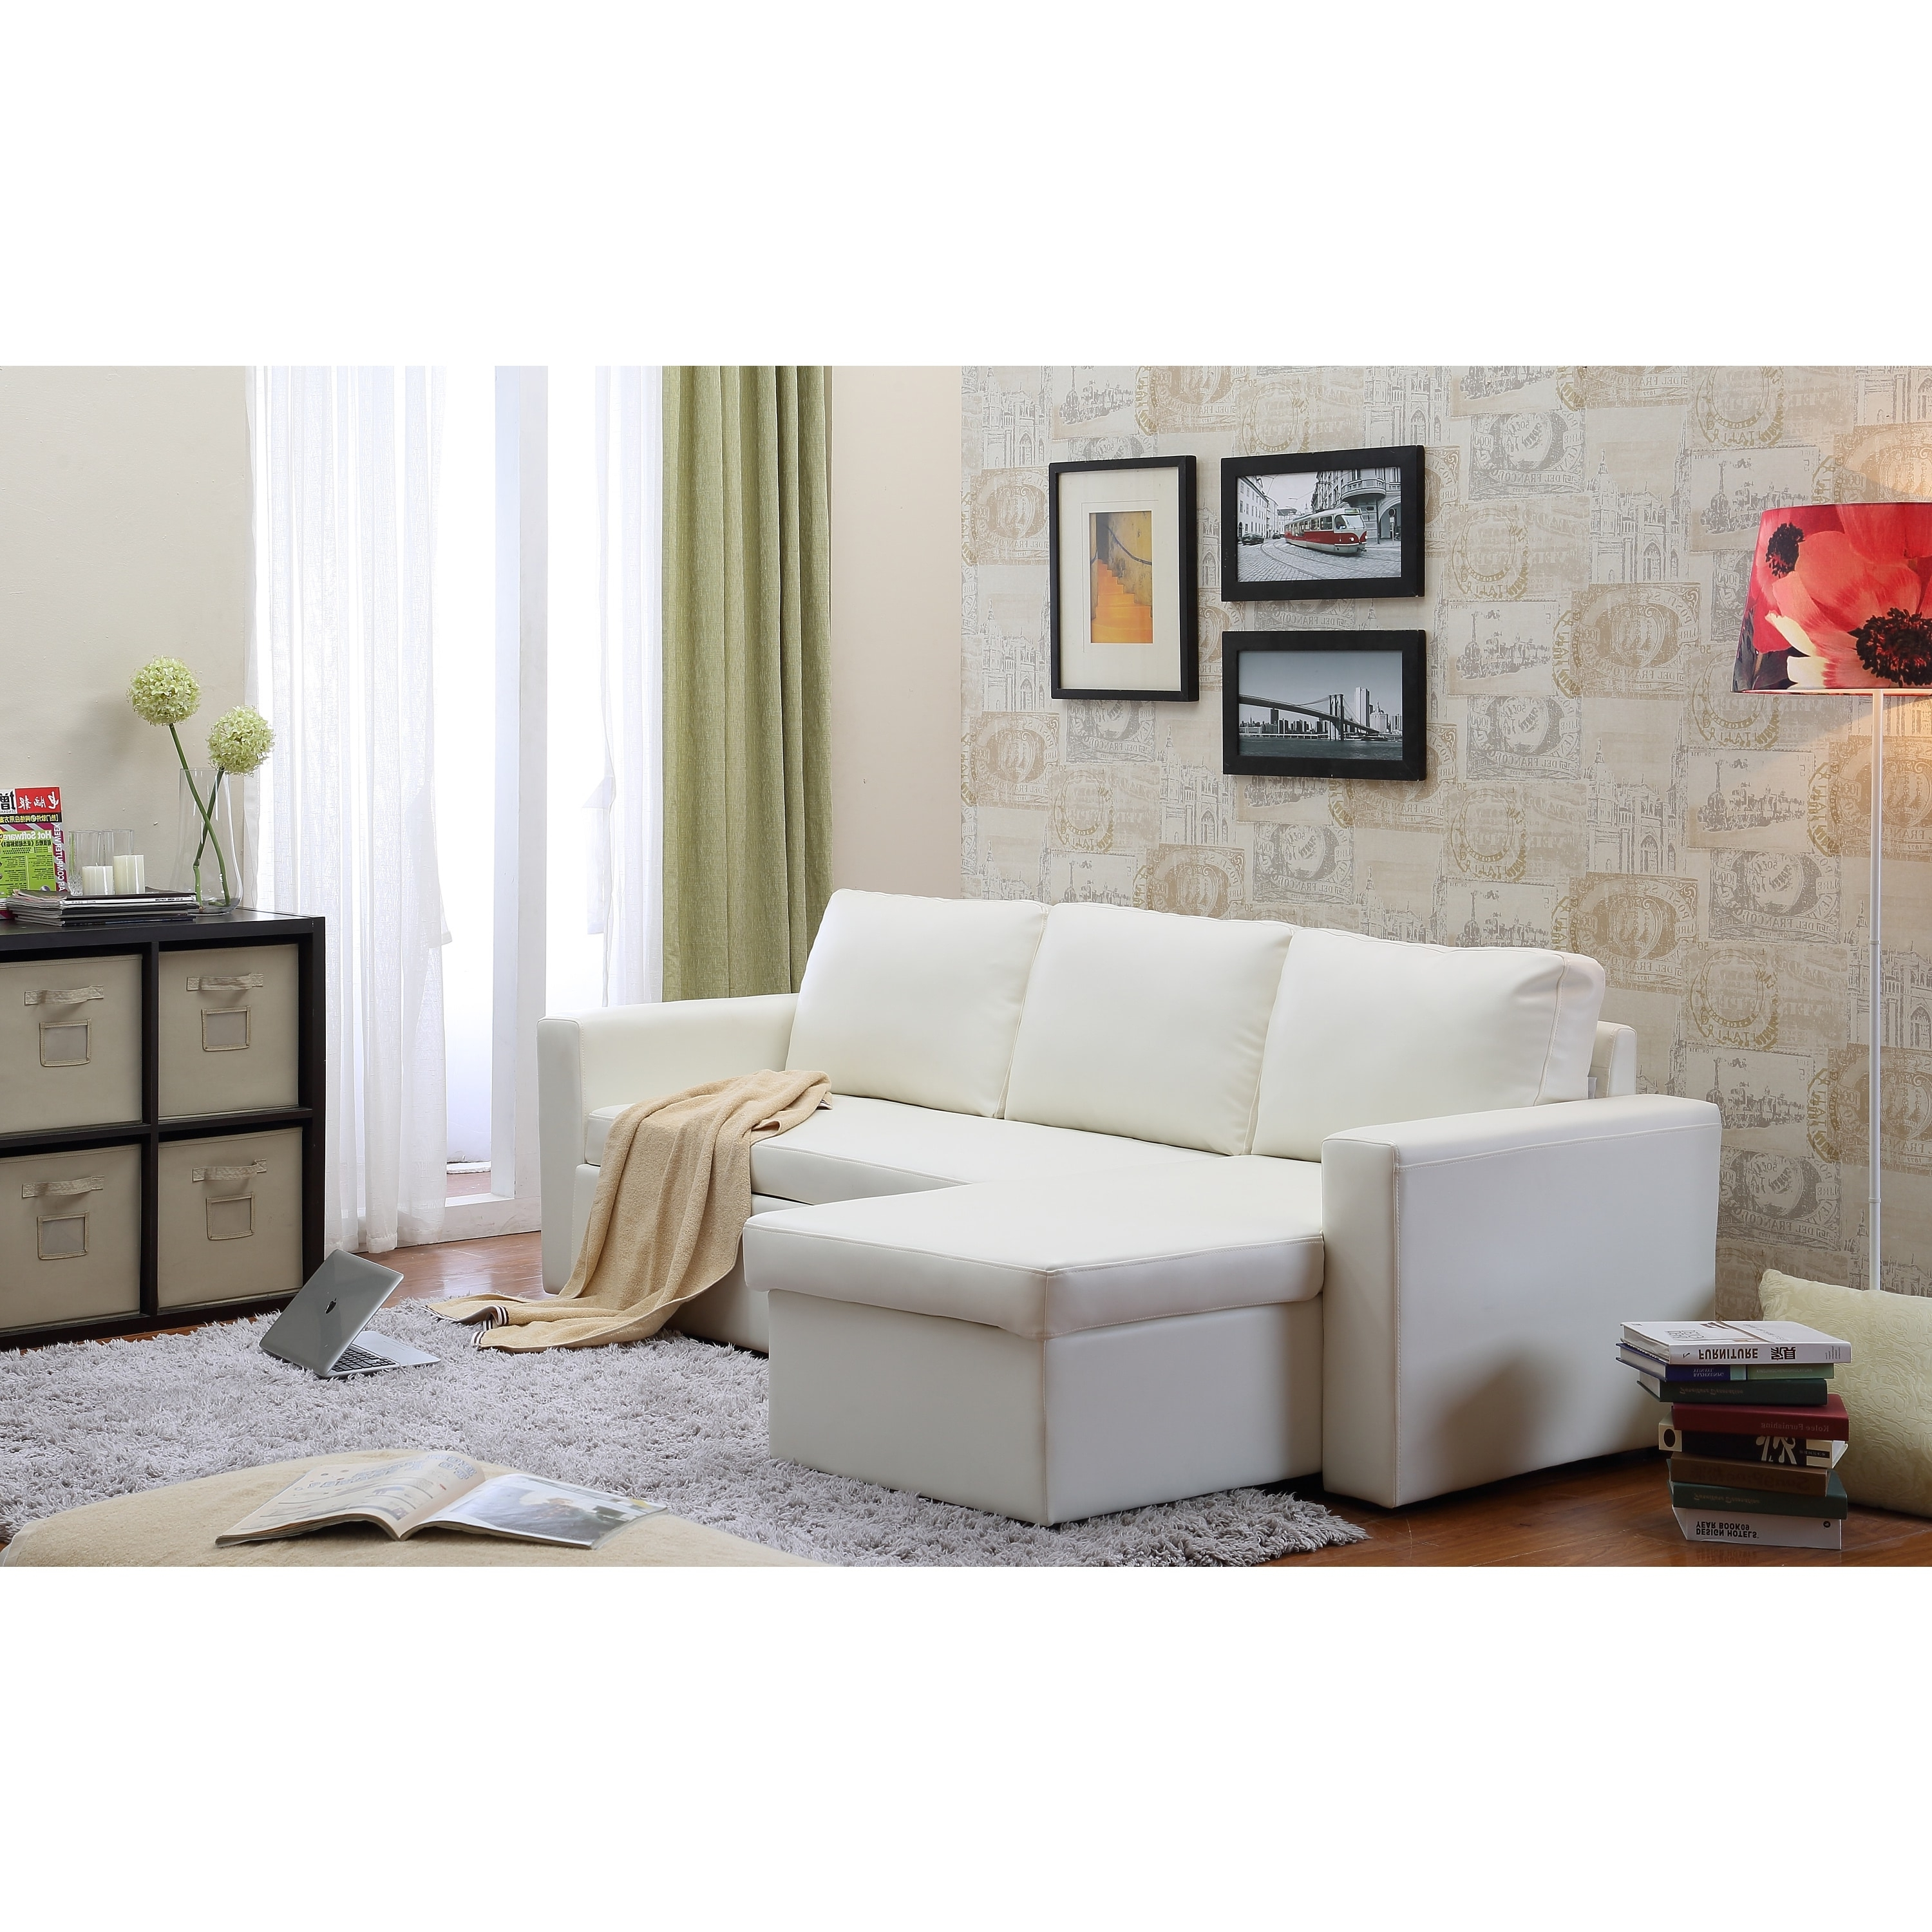 2018 The Hom Georgetown 2 Piece White Bi Cast Leather Sectional Sofa Inside Little Rock Ar Sectional Sofas (View 1 of 20)